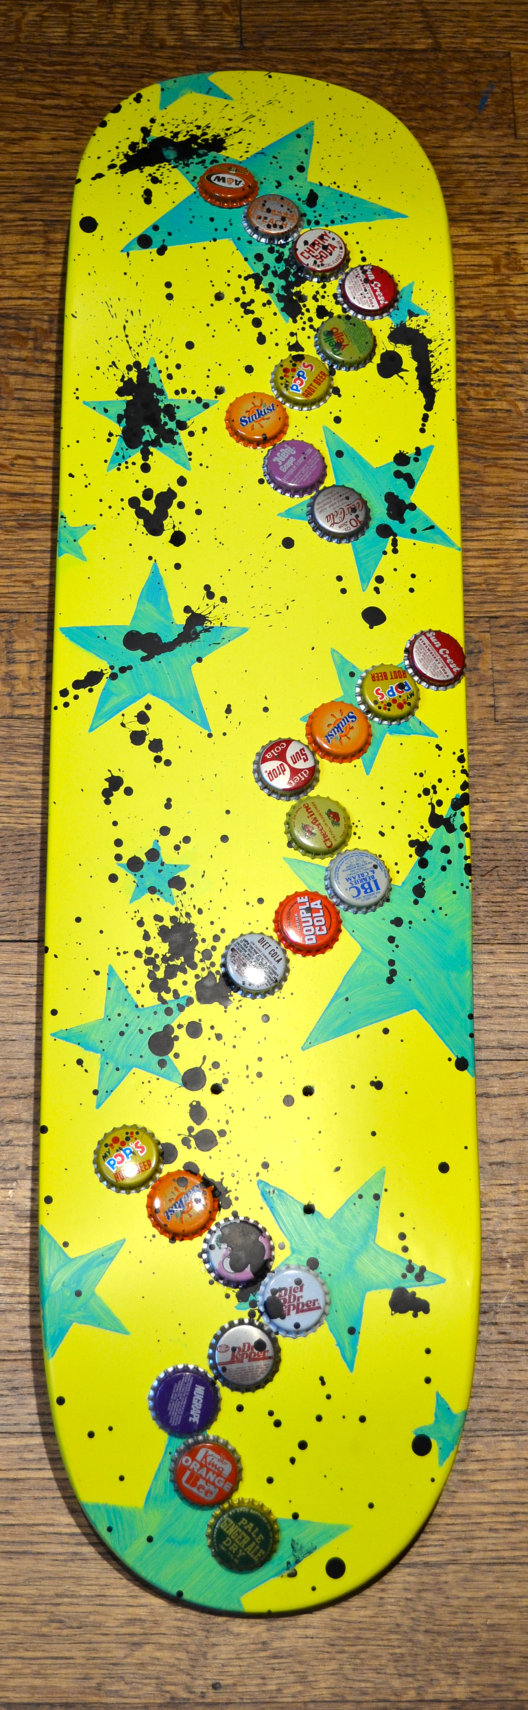 Original Skateboard Deck Wall Art by artbyjulieg on Etsy, $50.00 ...